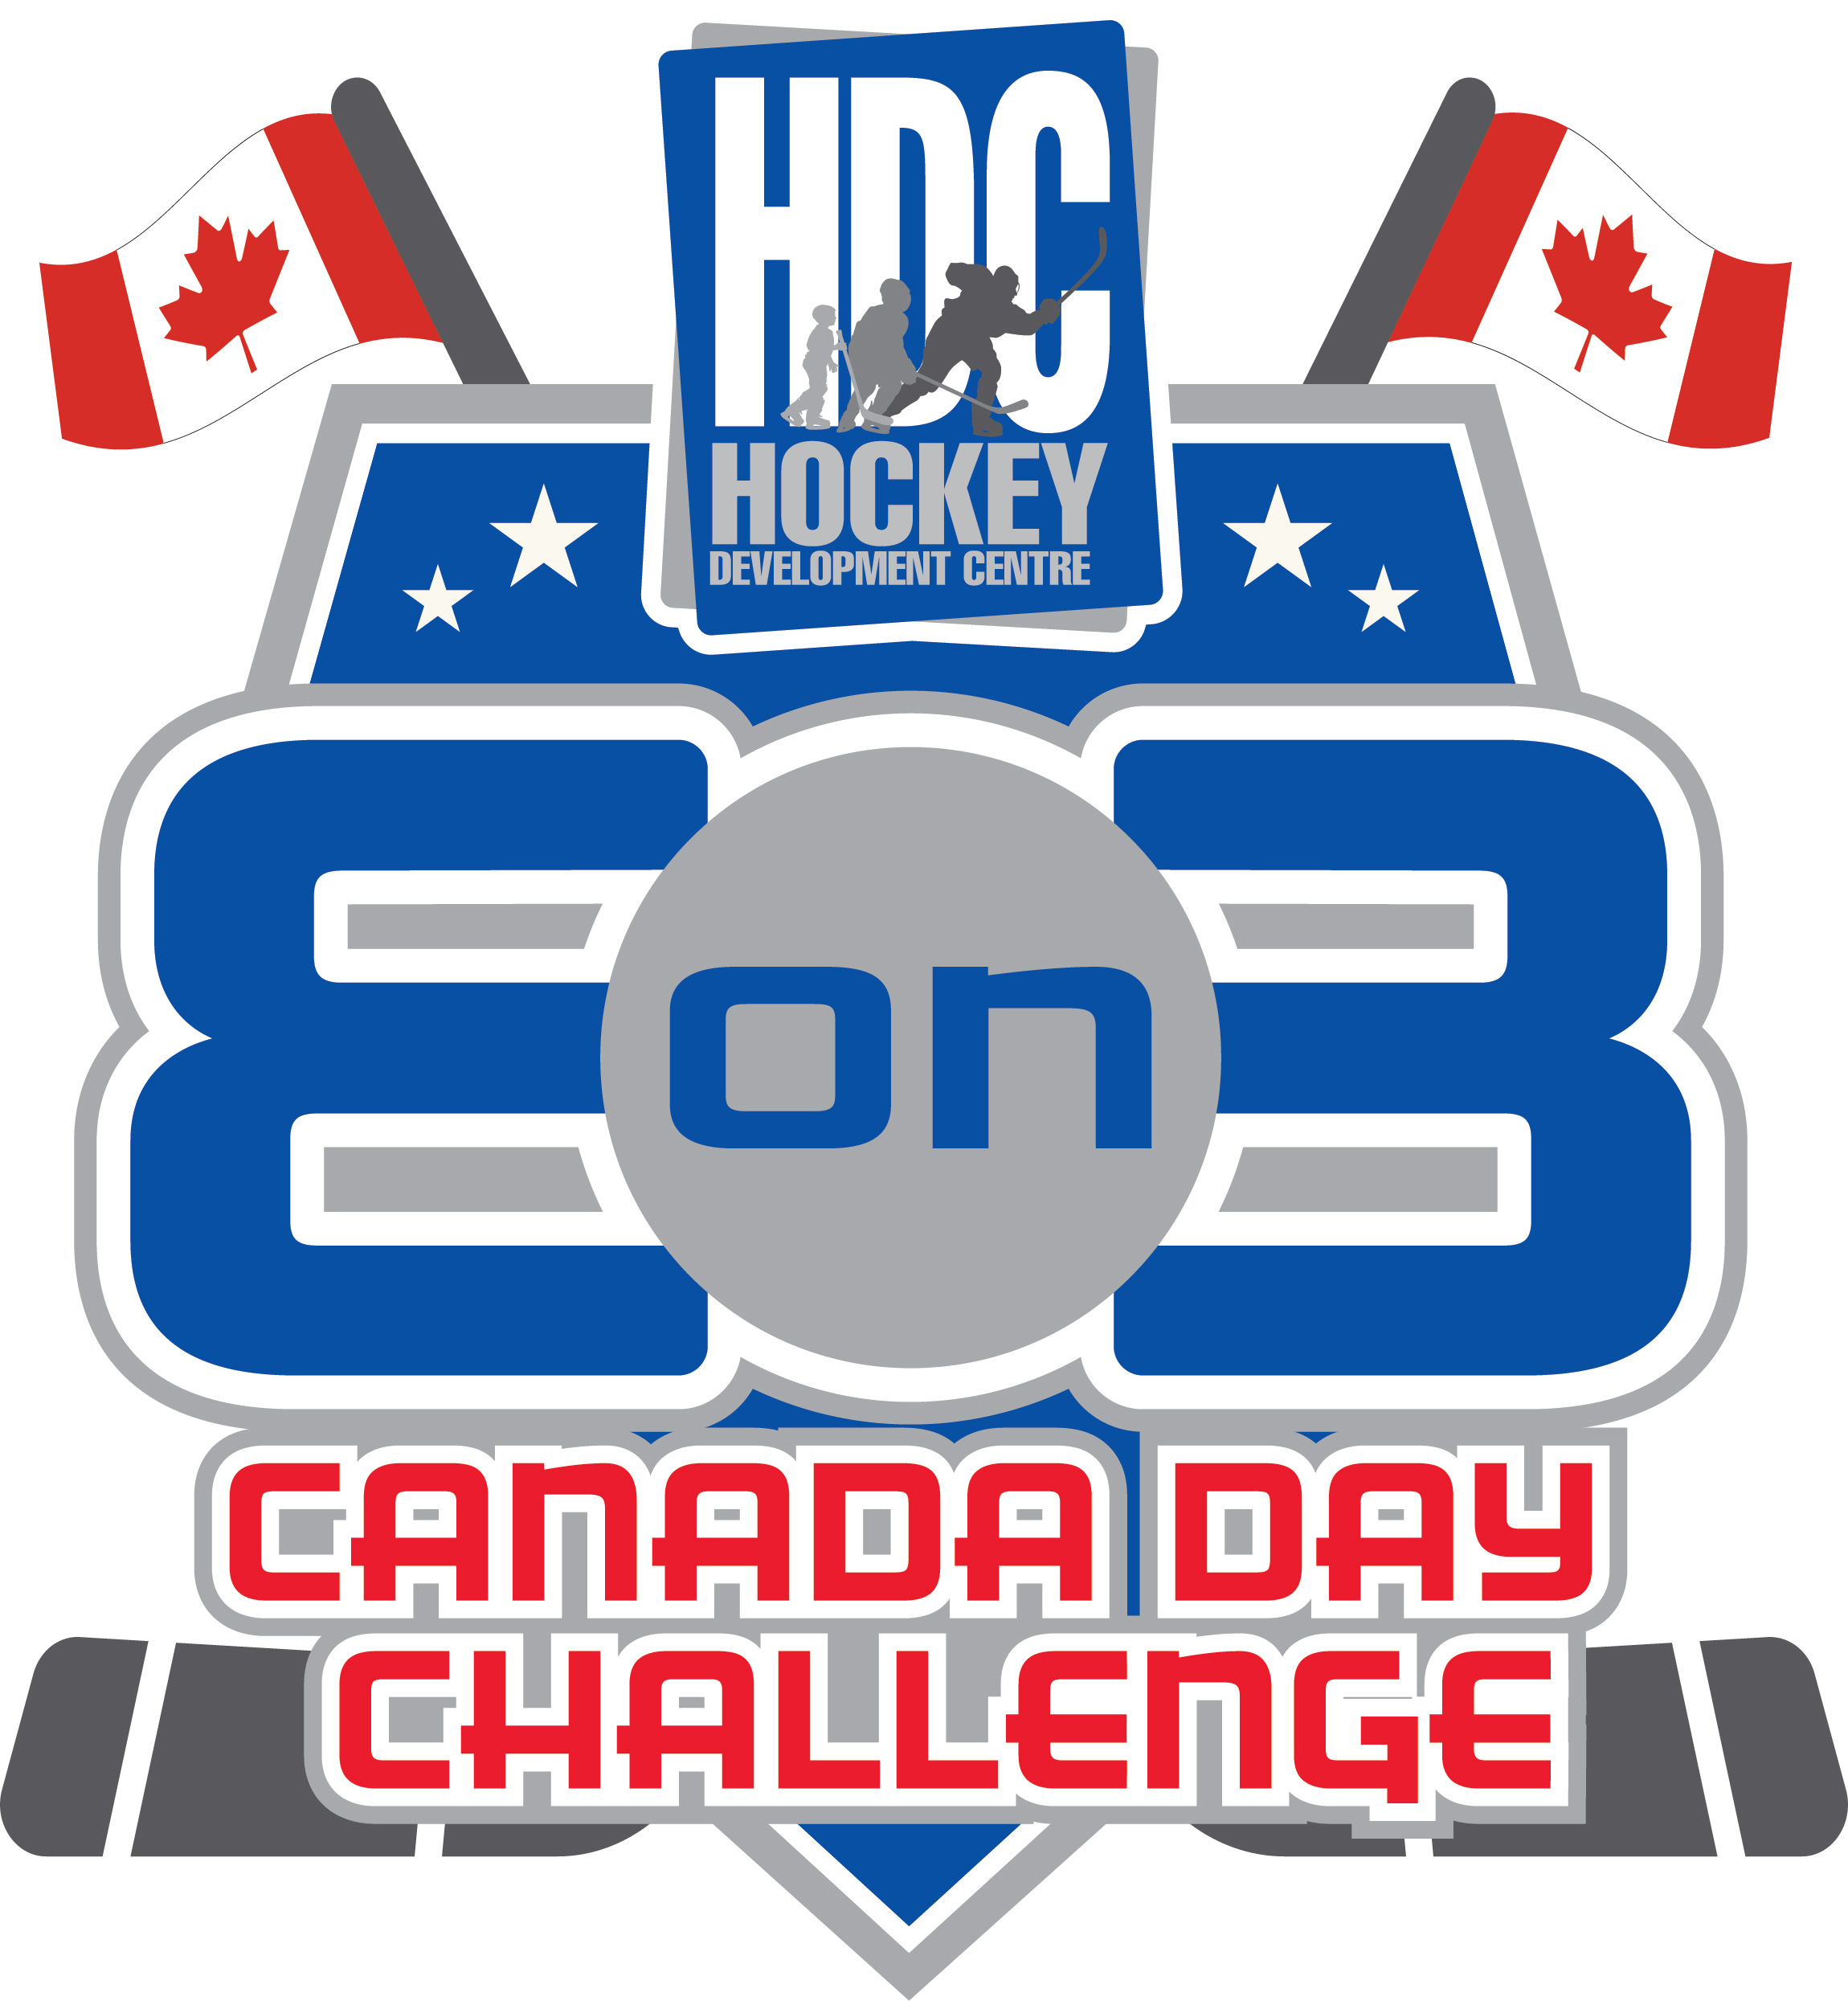 Canada Day Challenge